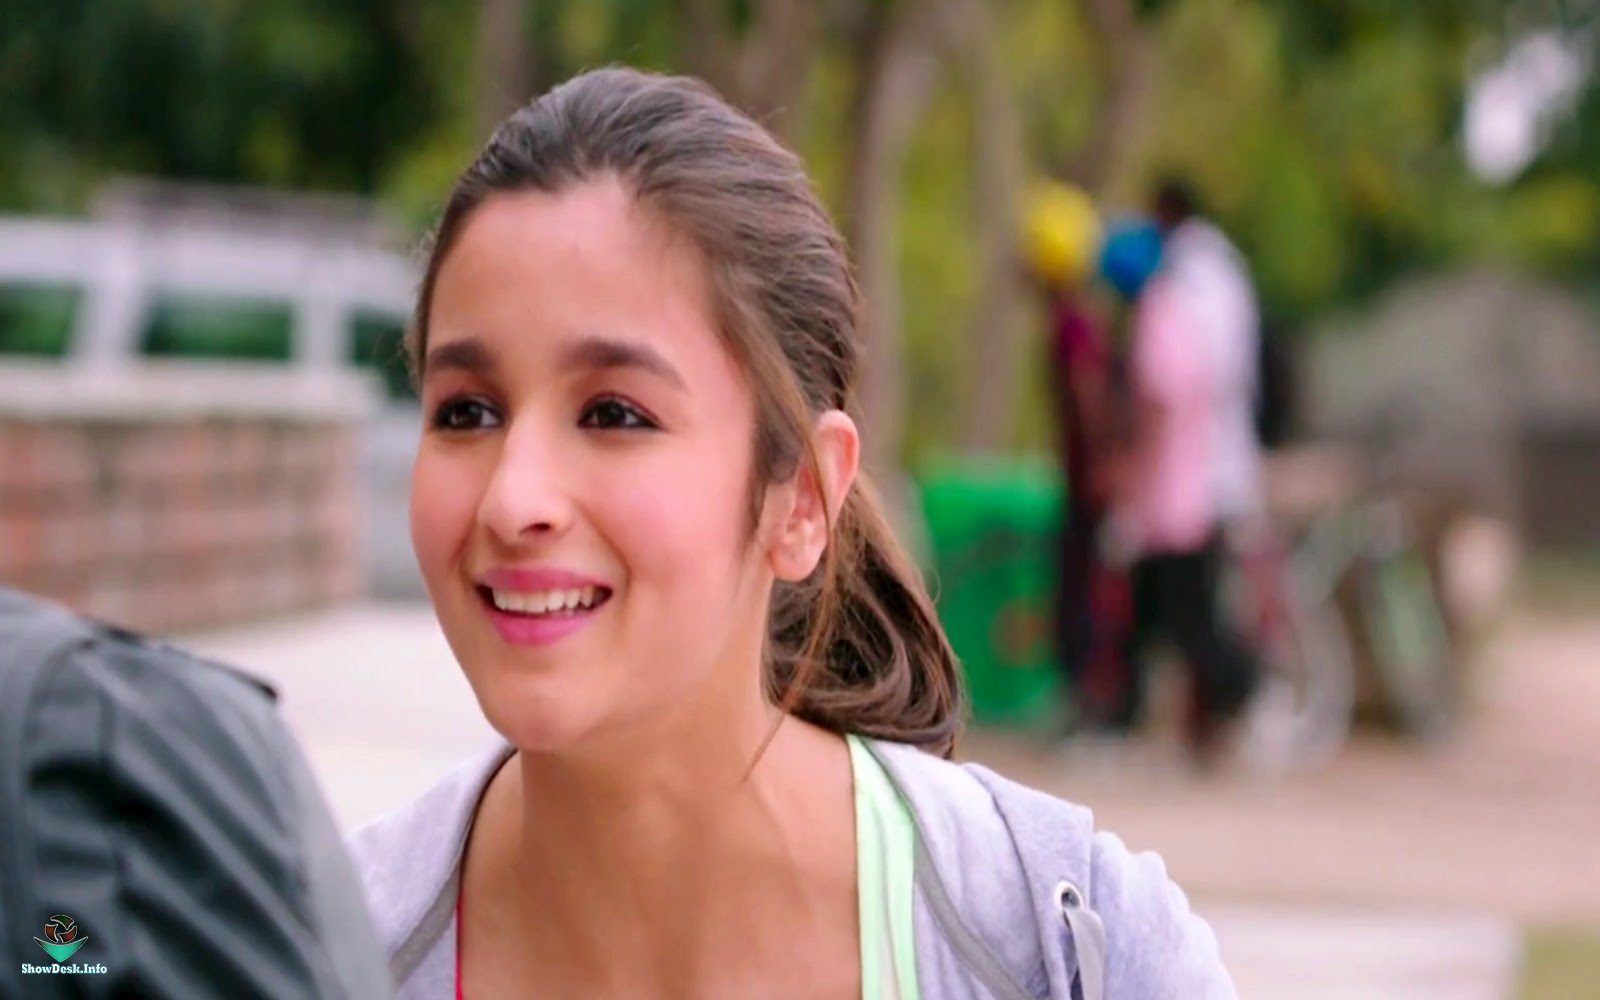 alia bhatt in humpty sharma ki dulhania wallpapers - Humpty Sharma Ki Dulhania wallpapers GlamSham